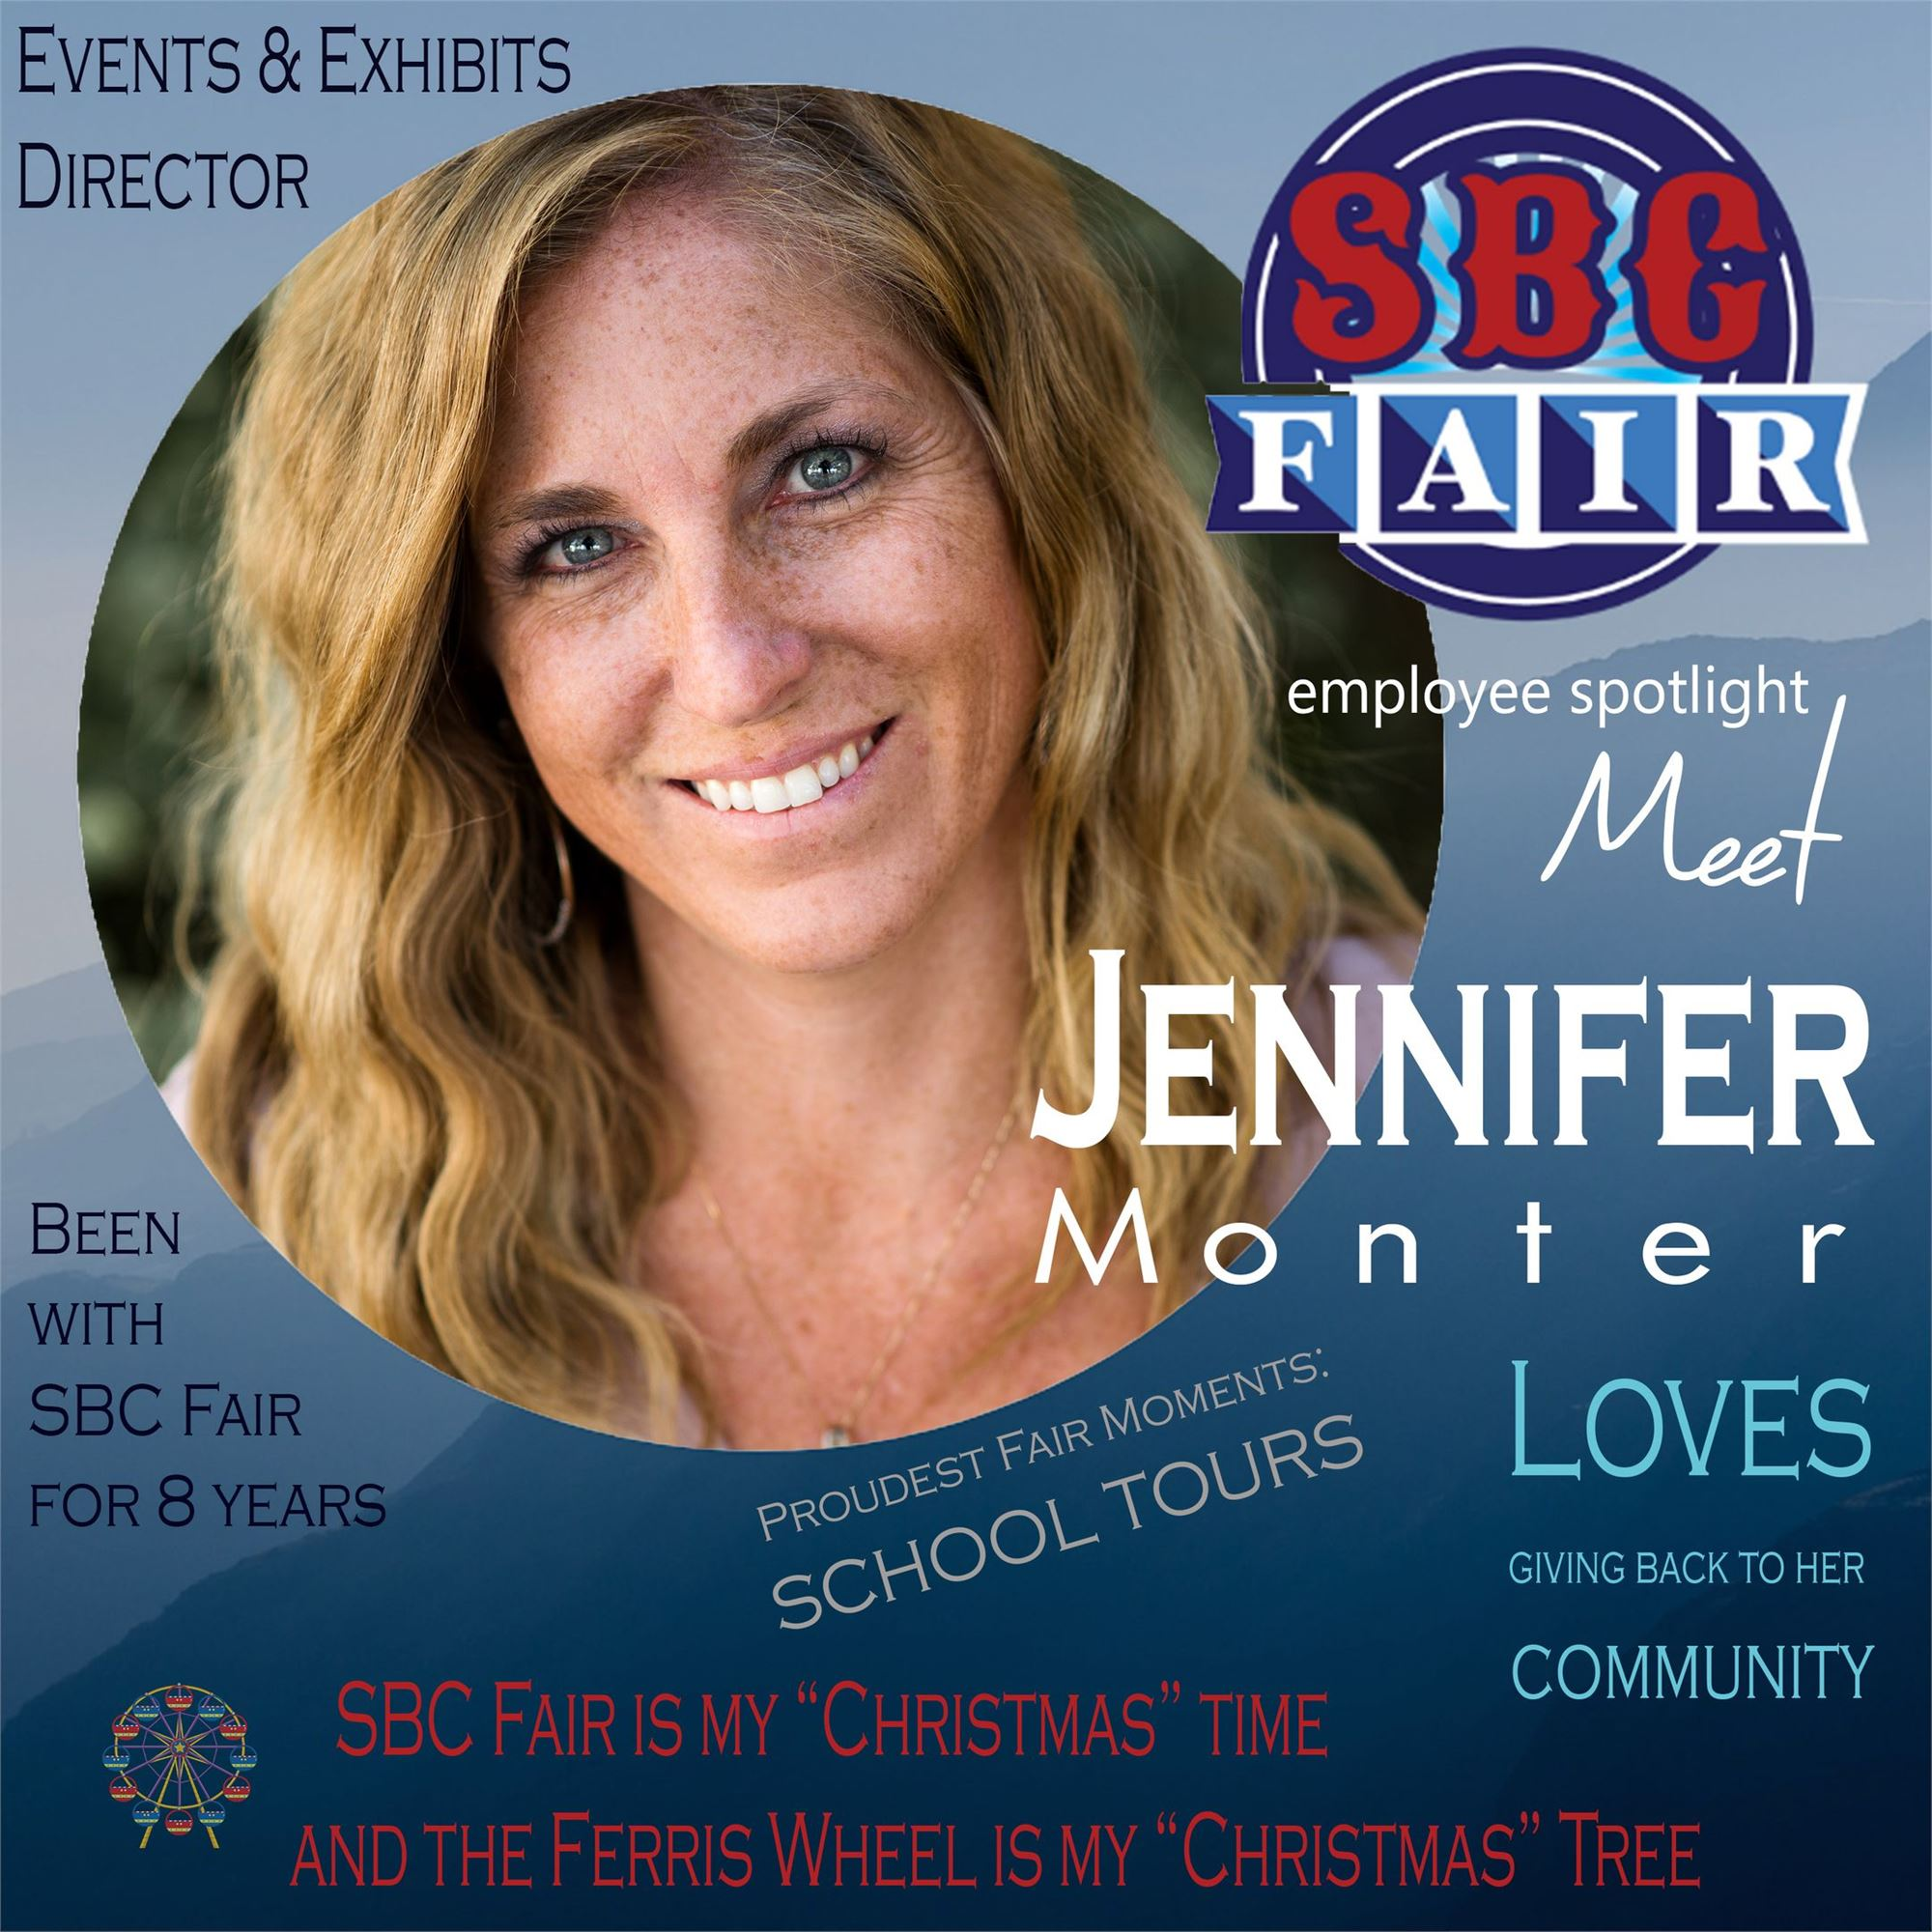 Jennifer Monter